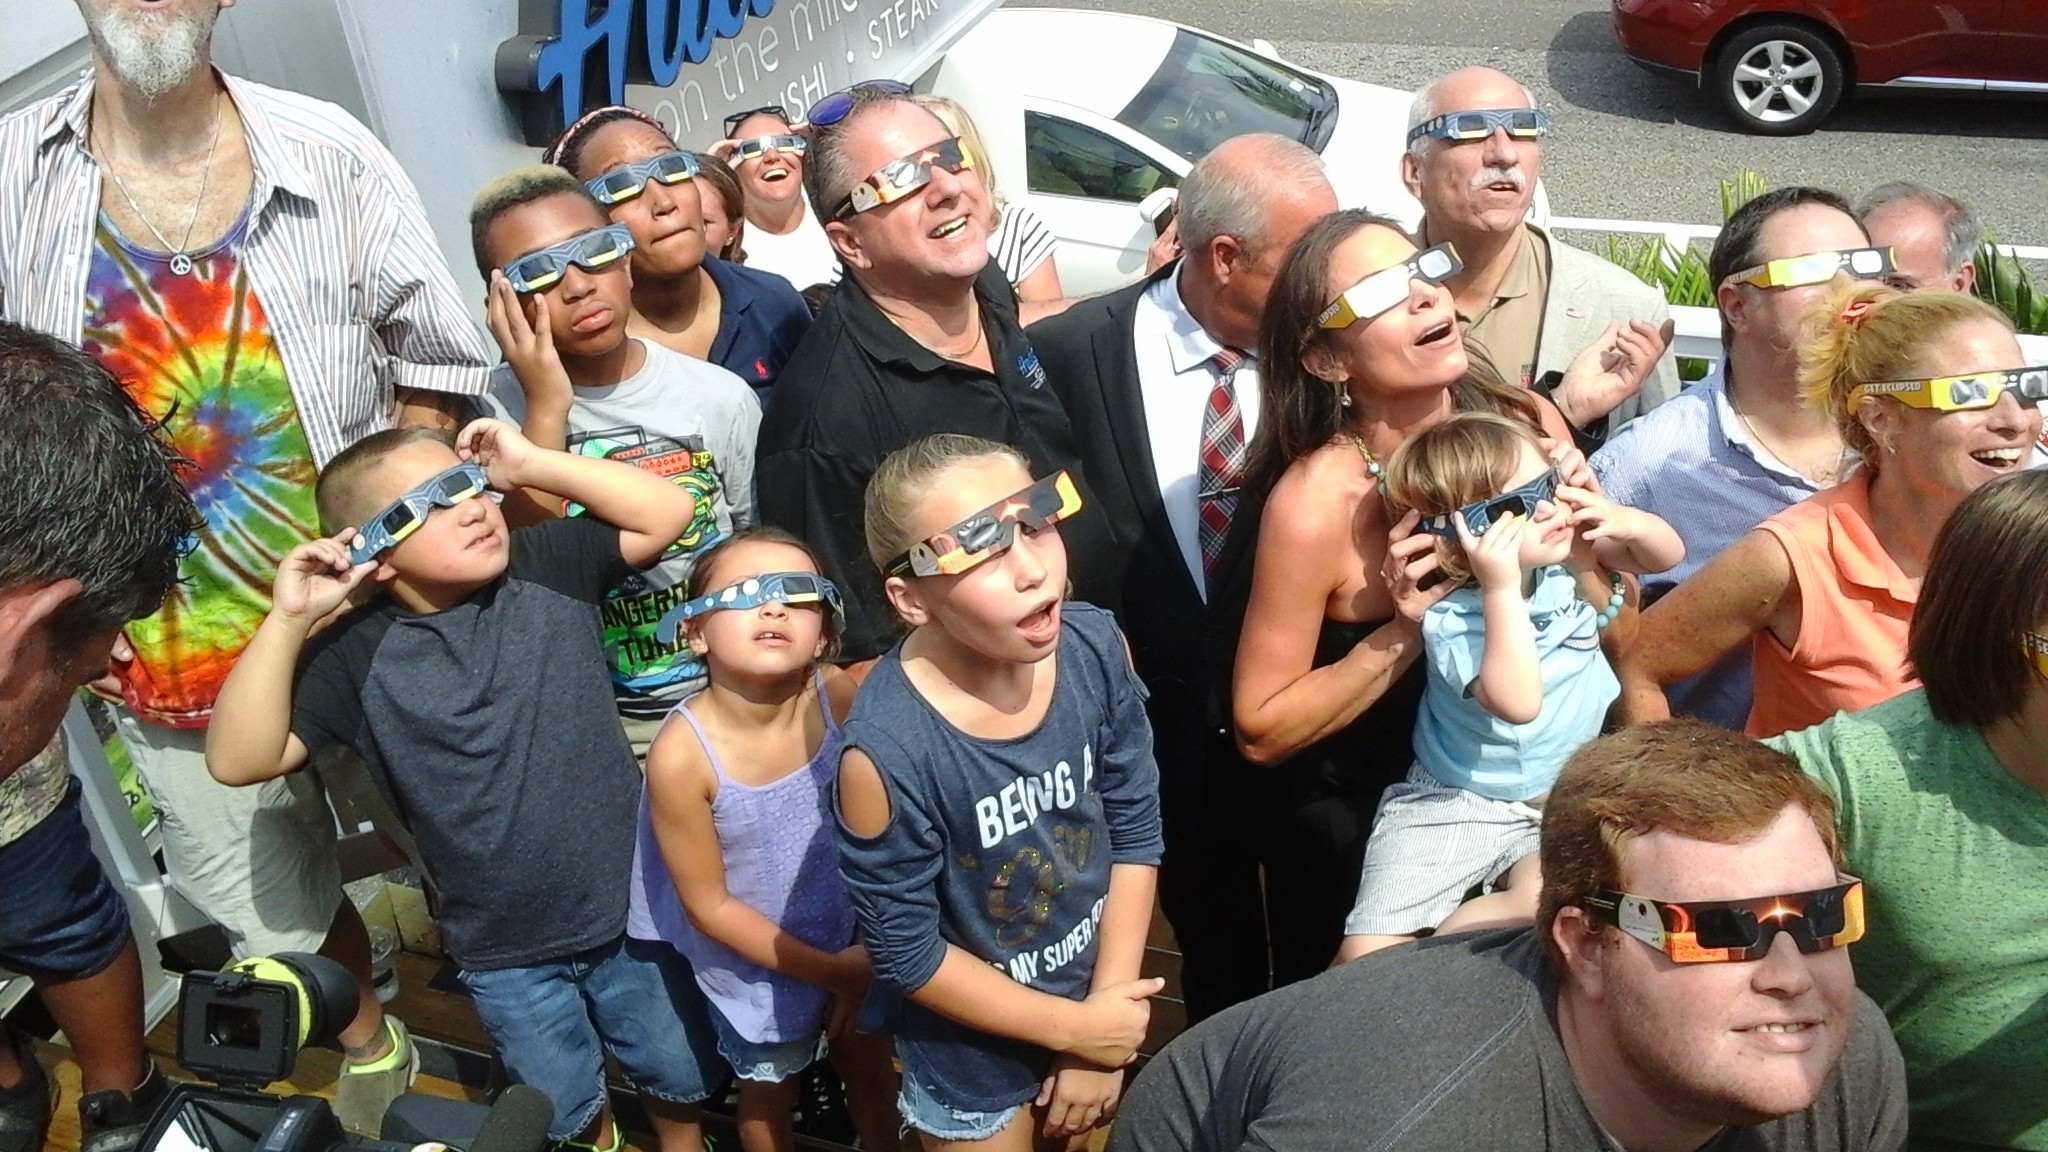 Spectators gathered at Hudson's on the Mile, off Woodcleft Avenue, in Freeport on Monday to watch the solar eclipse on the newly open solar deck.